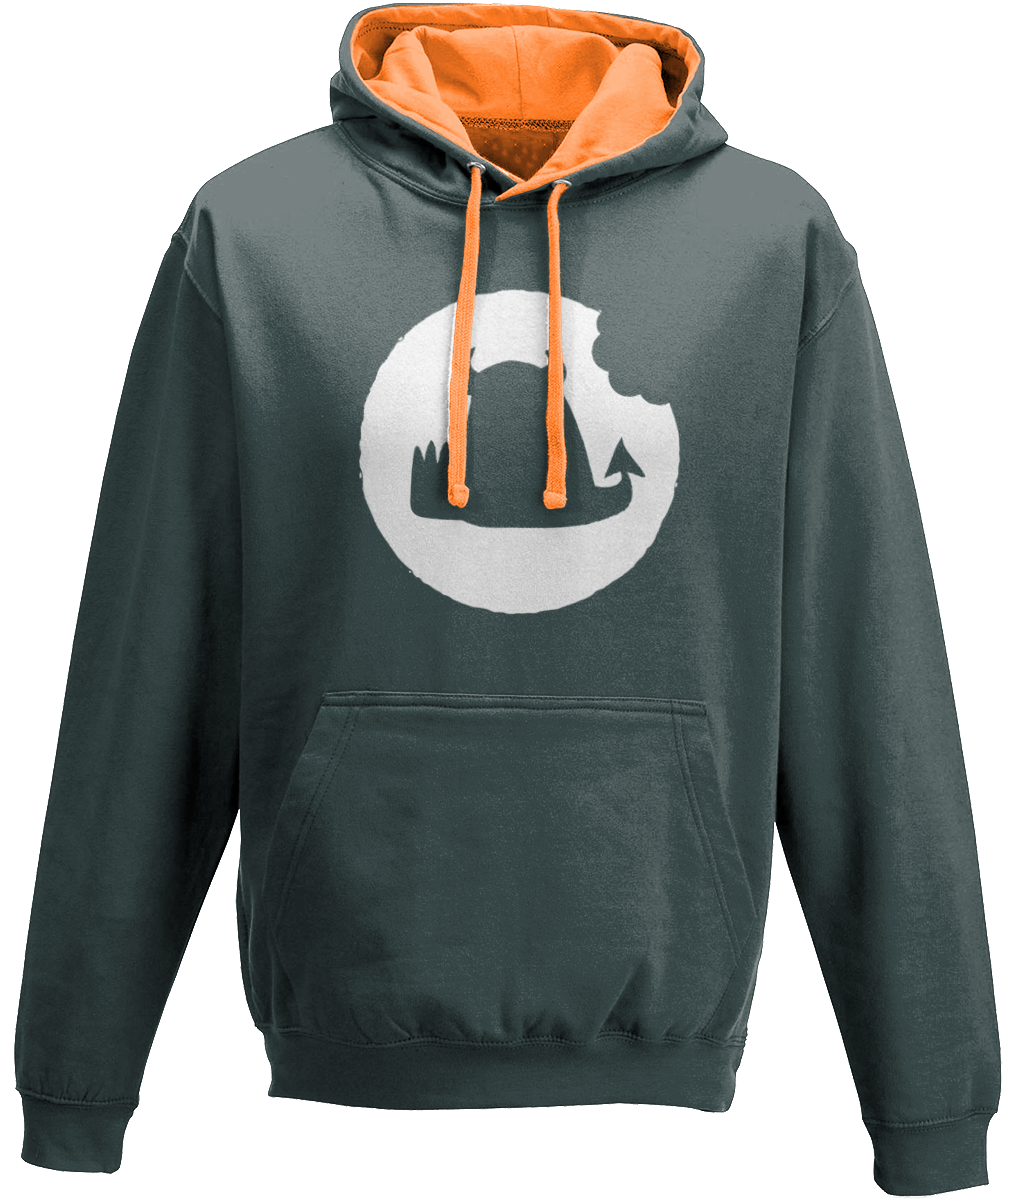 Beasties Biscuit Hoodie - Beasties Clothing